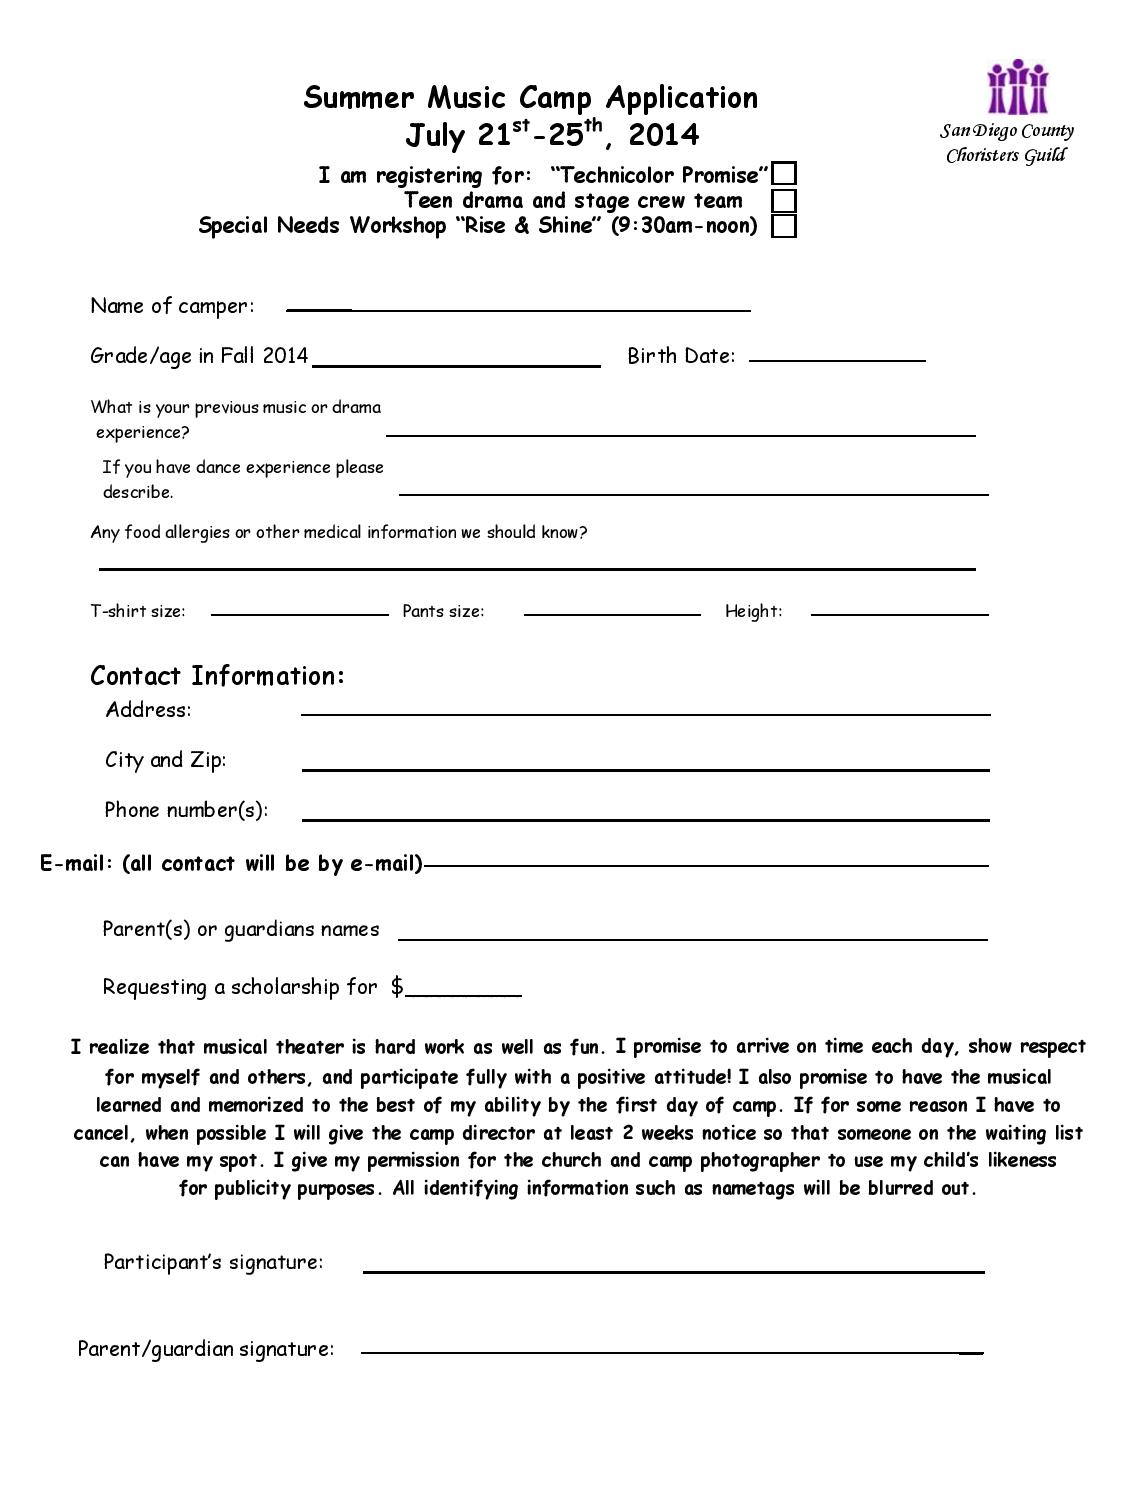 content uploads camp adult info form